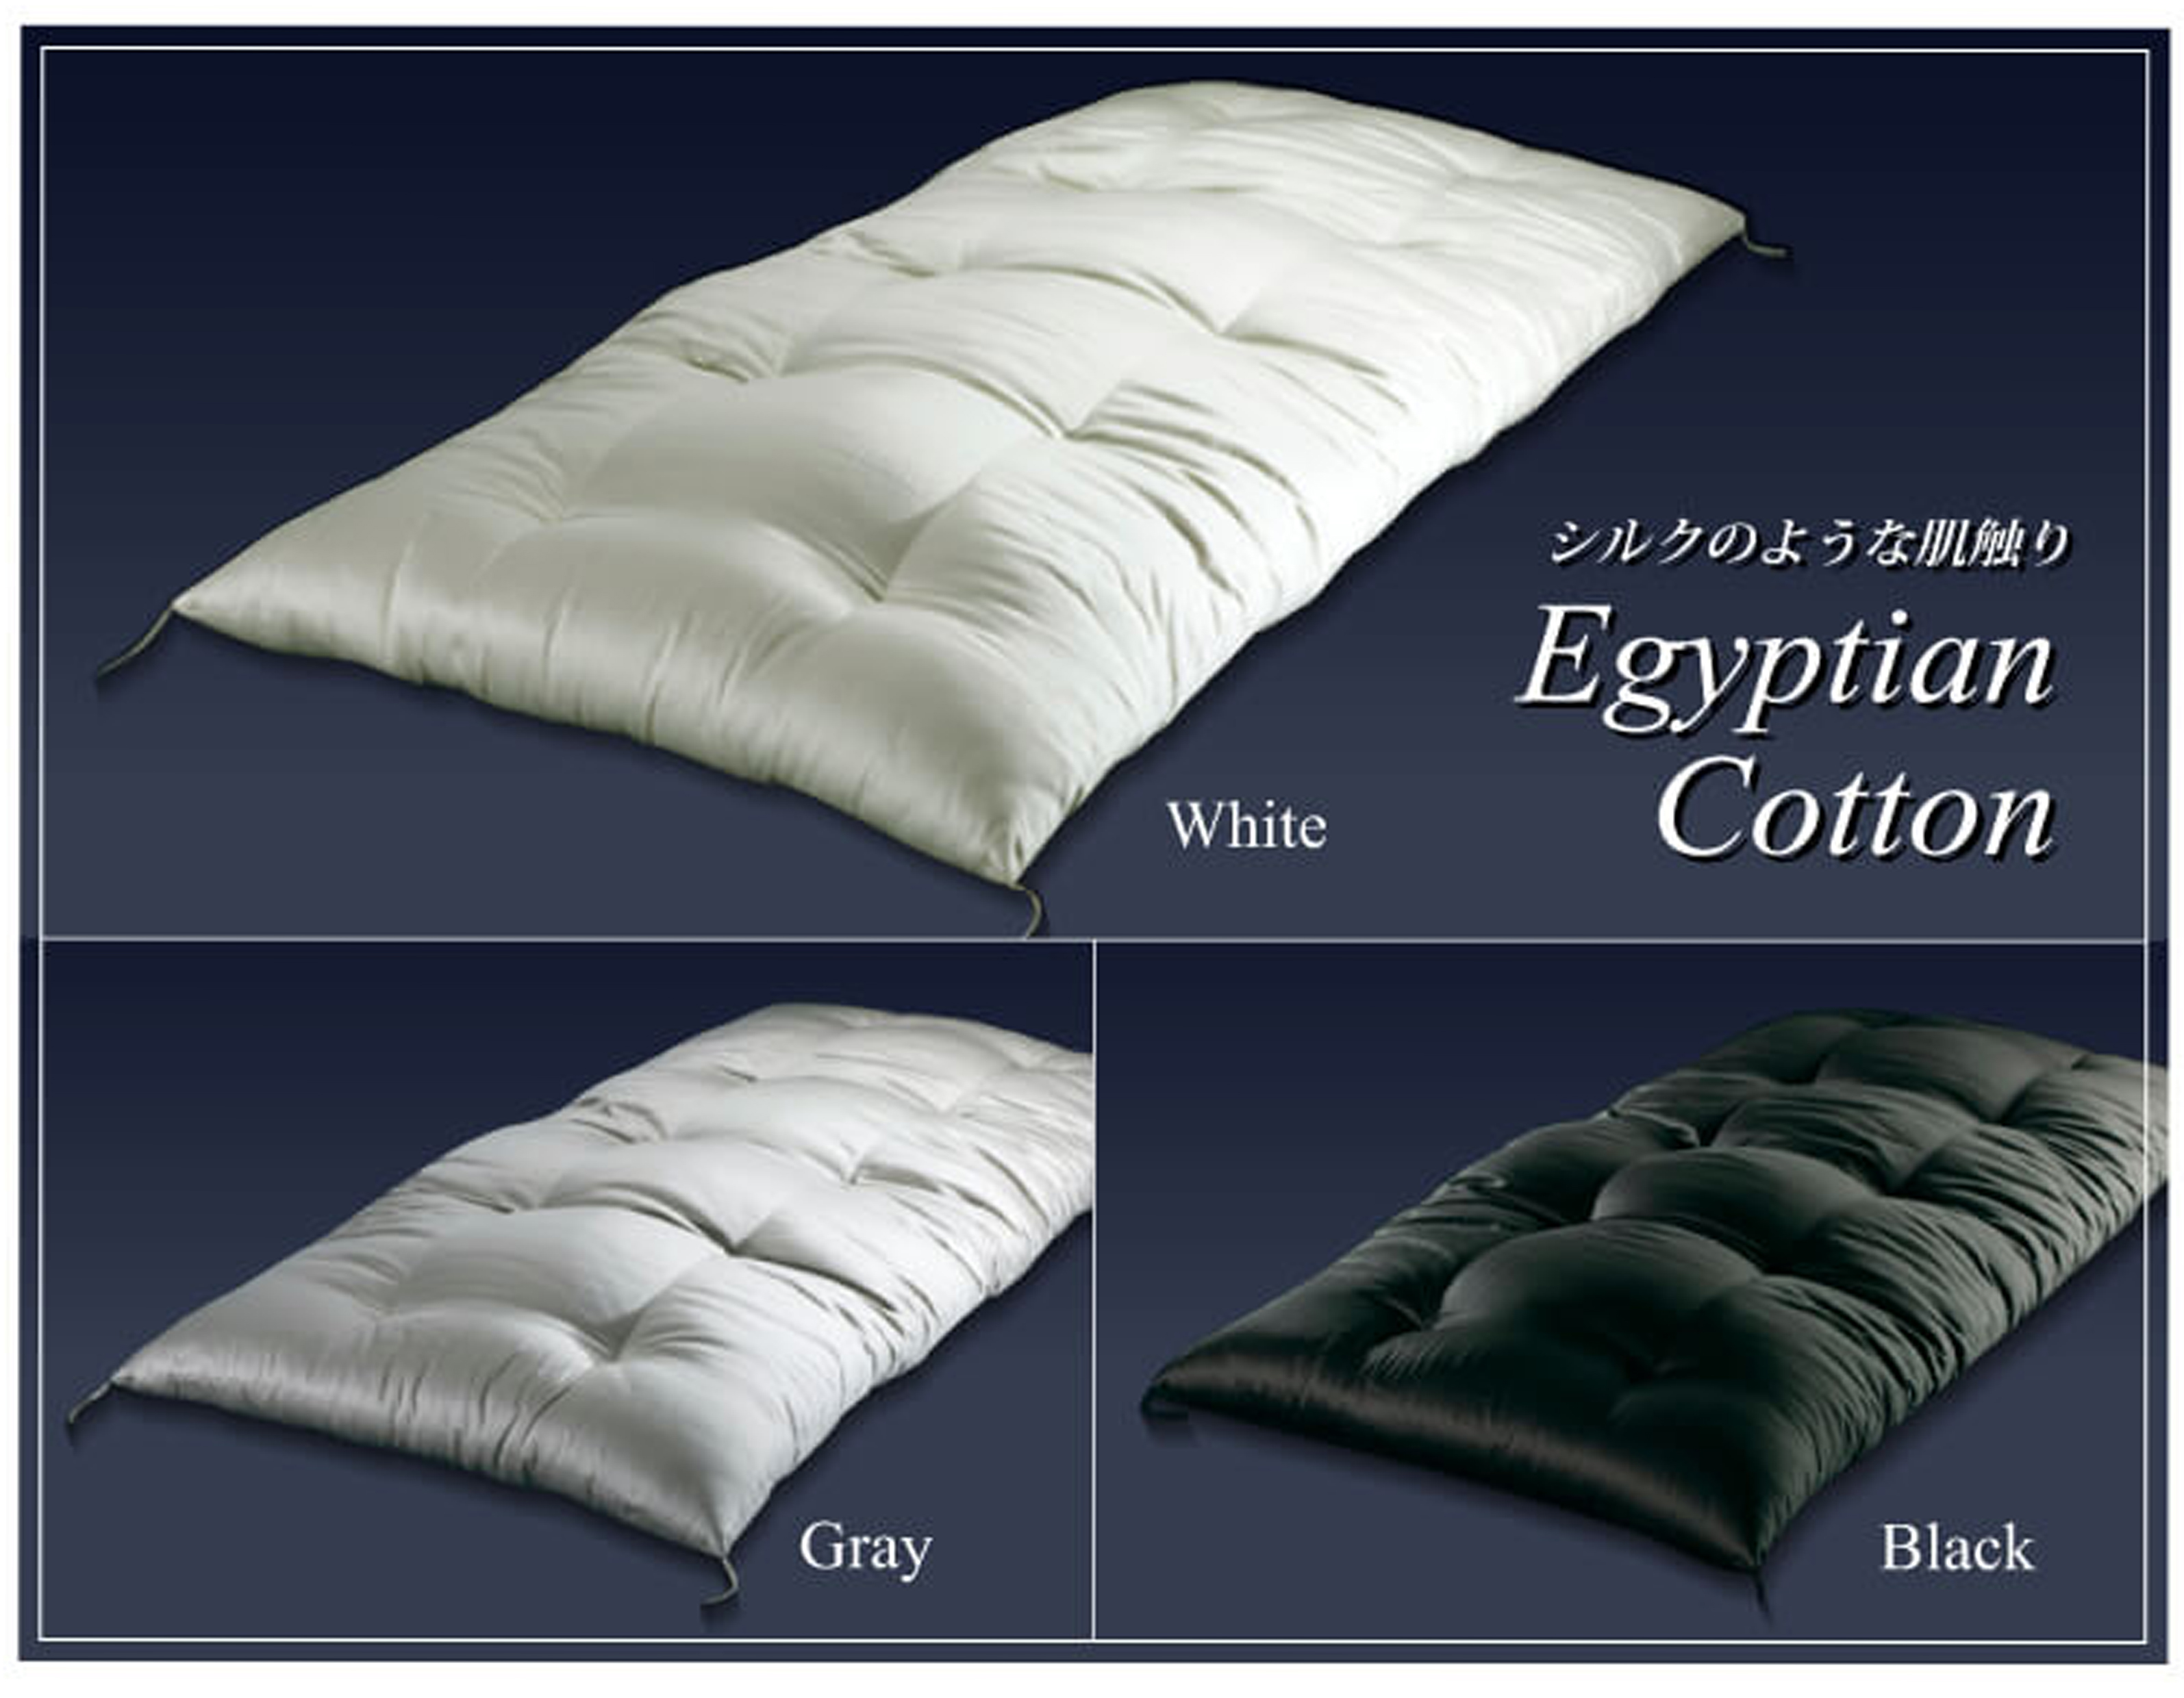 Artisan handmade Using natural cotton Egyptian cotton